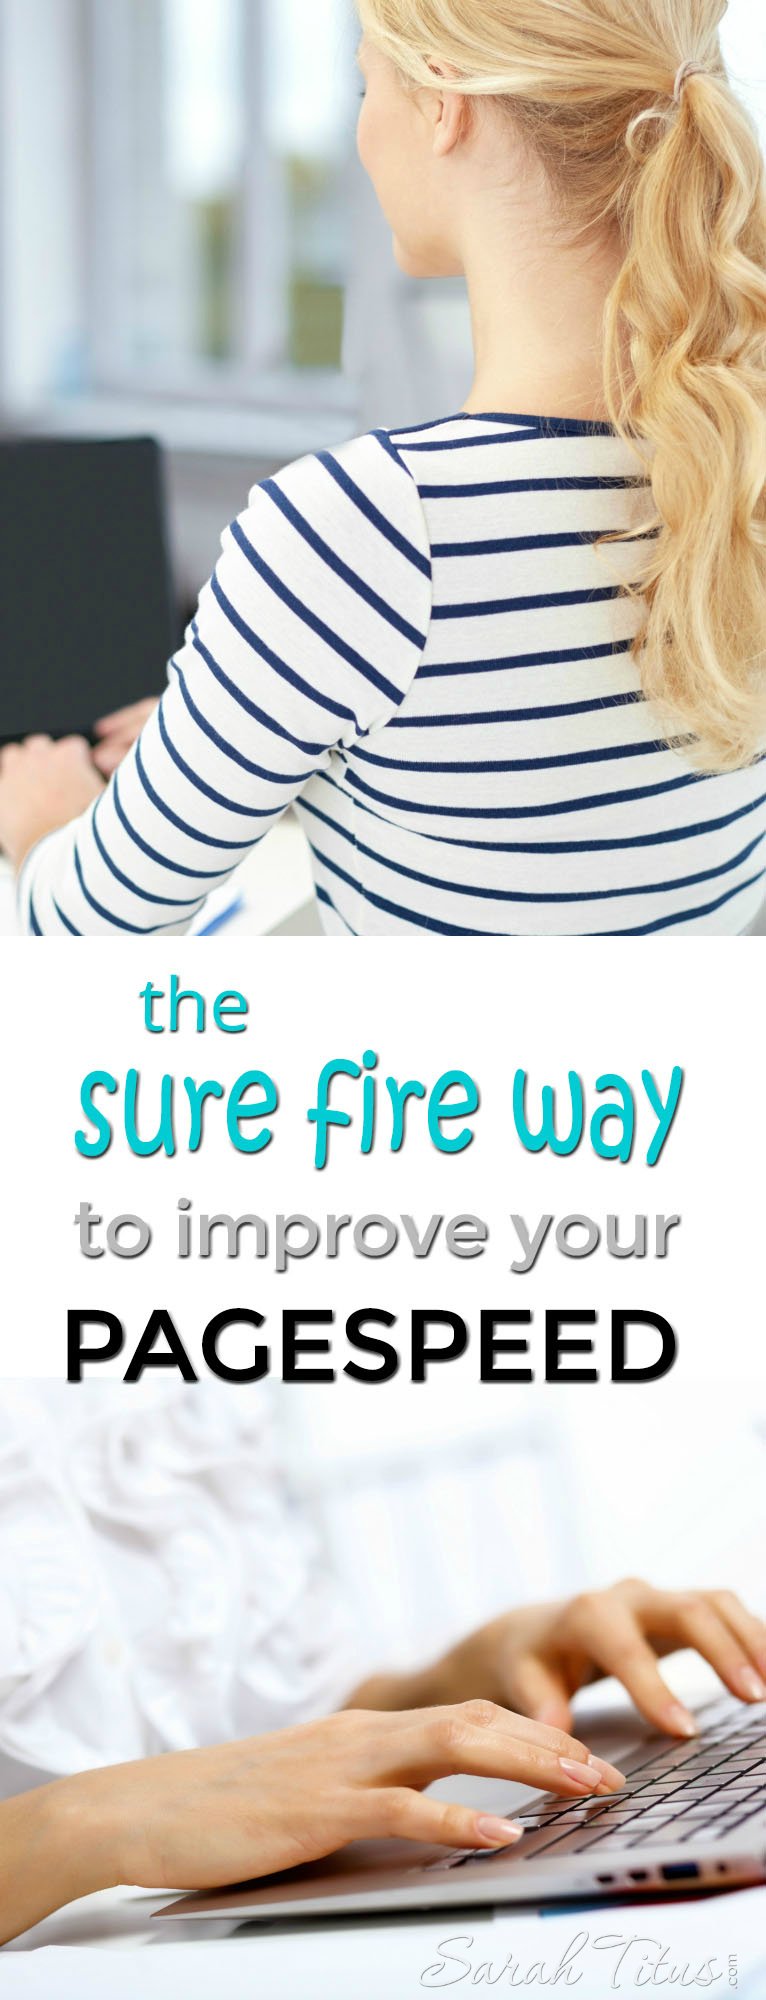 I reduced my pagespeed by over 6 seconds using this method. Here's the sure fire way to improve your pagespeed too!